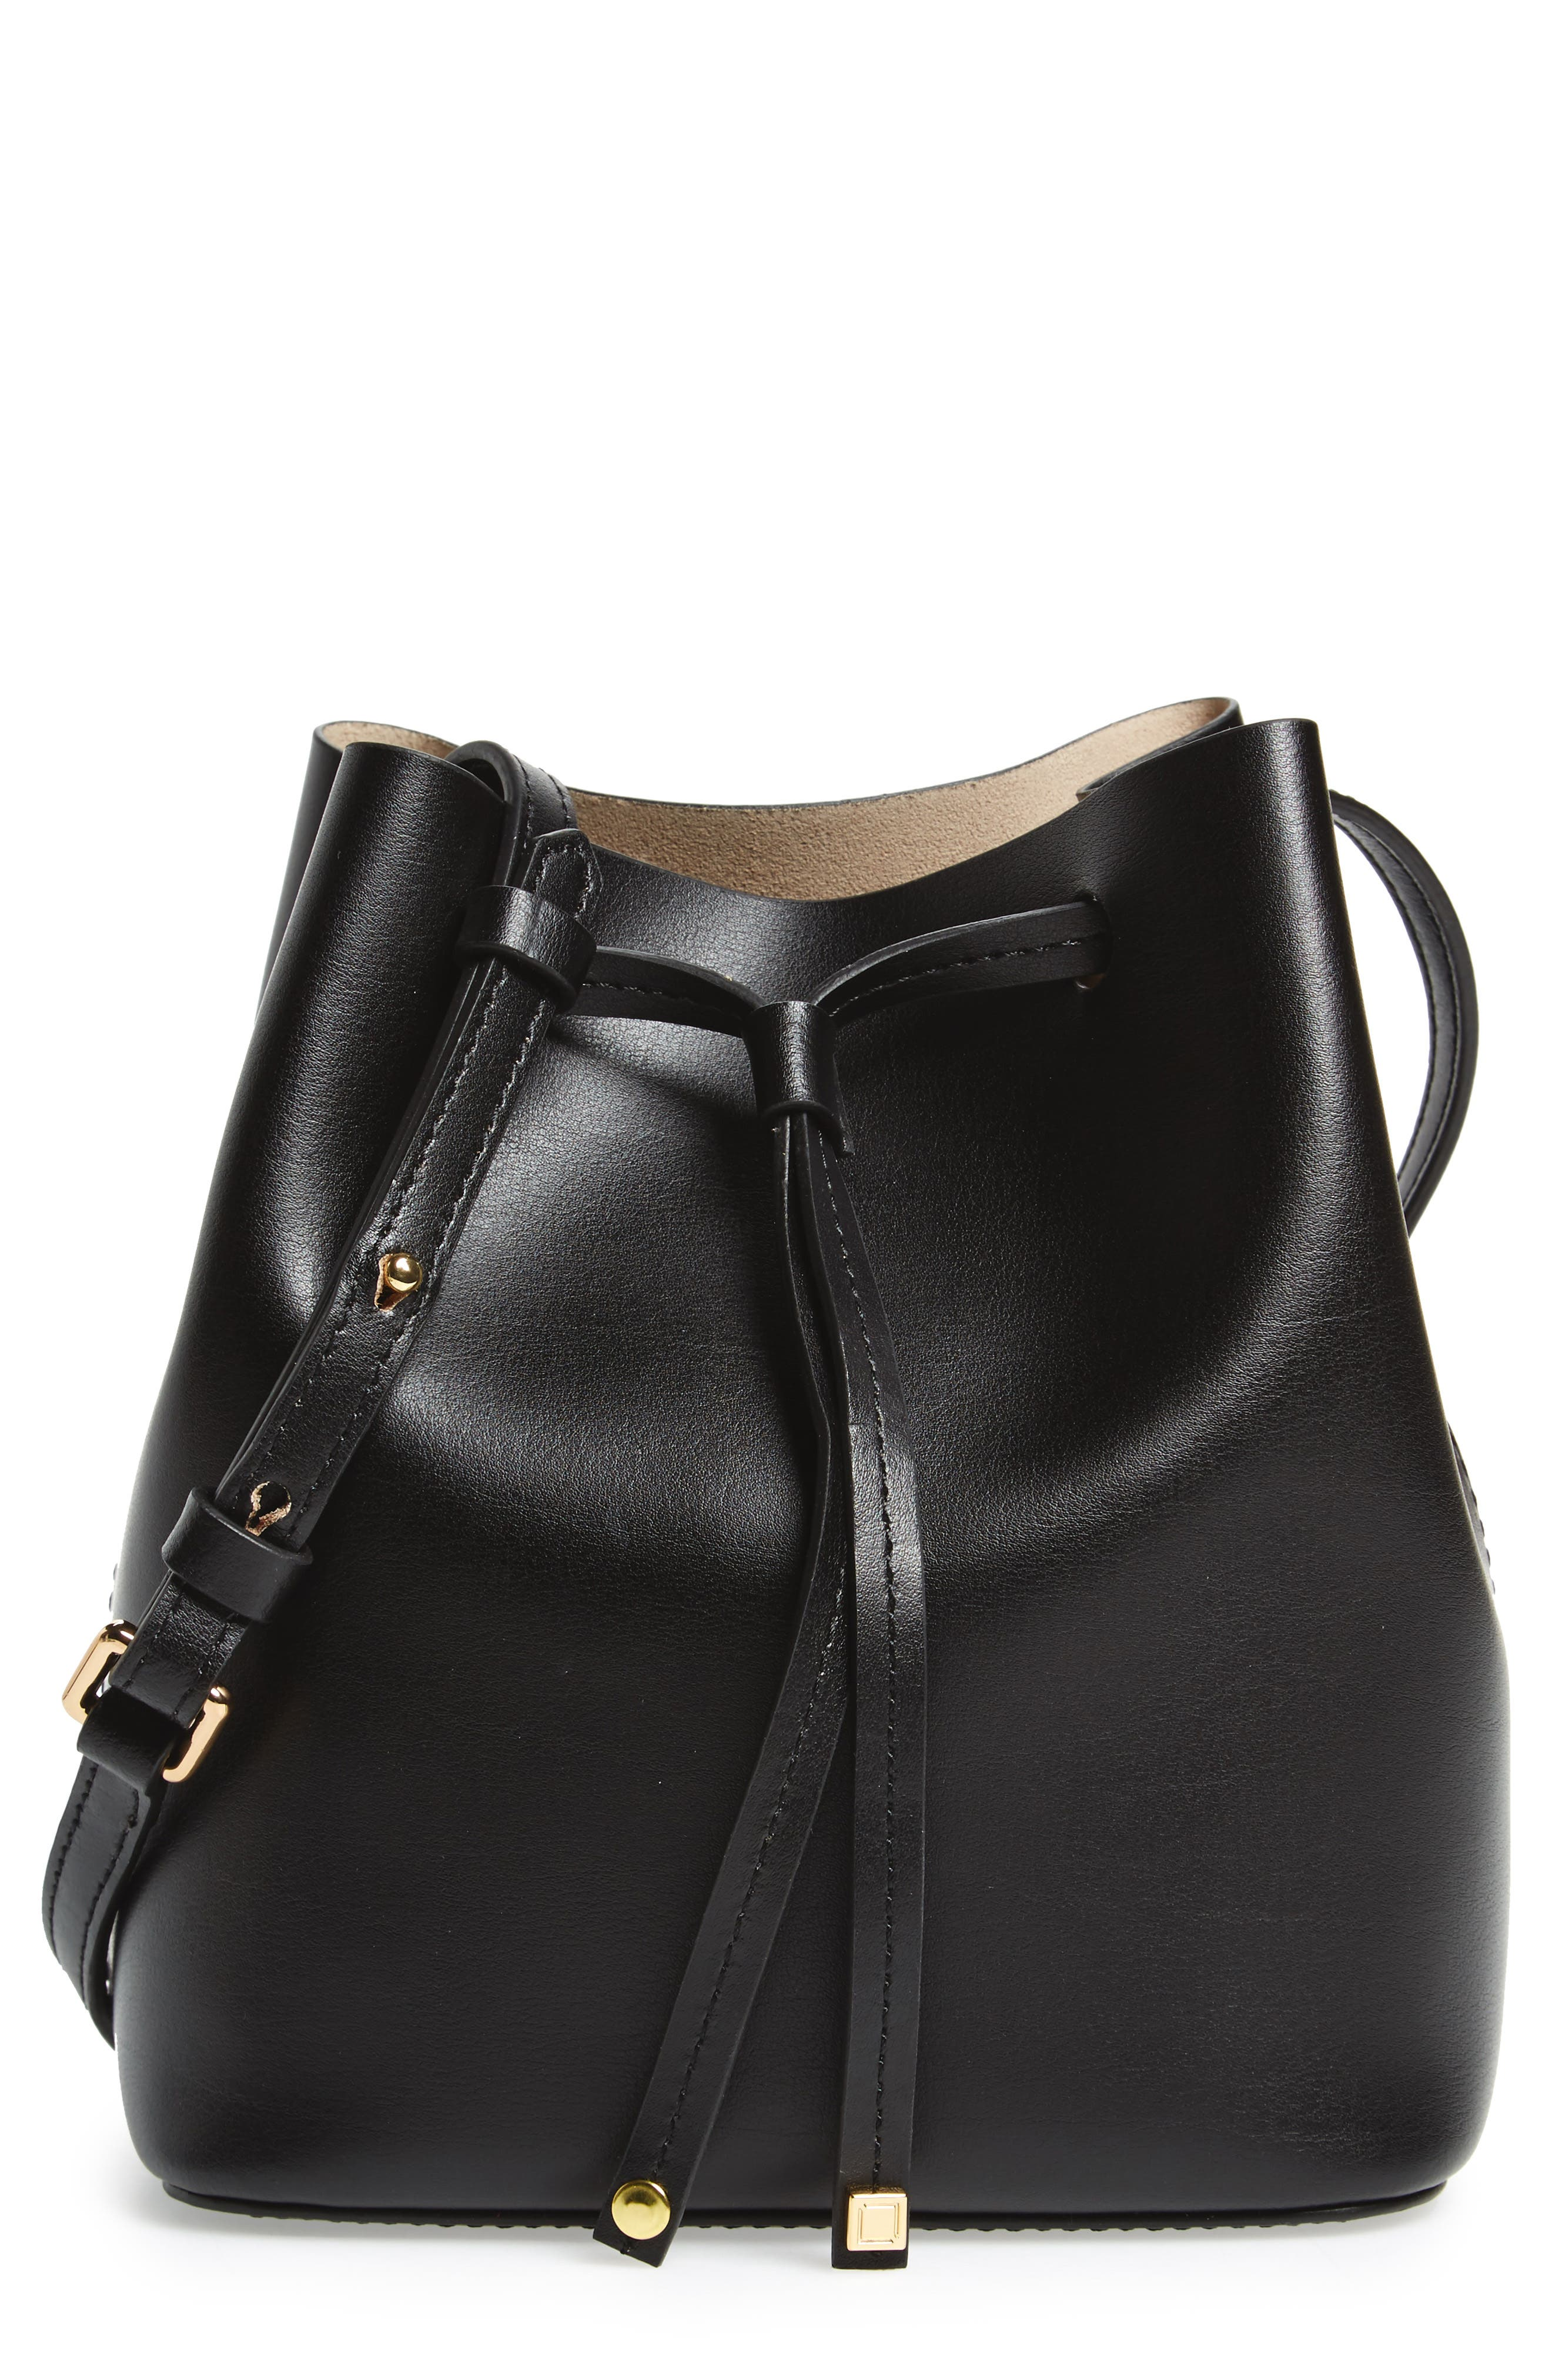 LODIS Small Silicon Valley Blake RFID Leather Bucket Bag,                             Main thumbnail 1, color,                             001